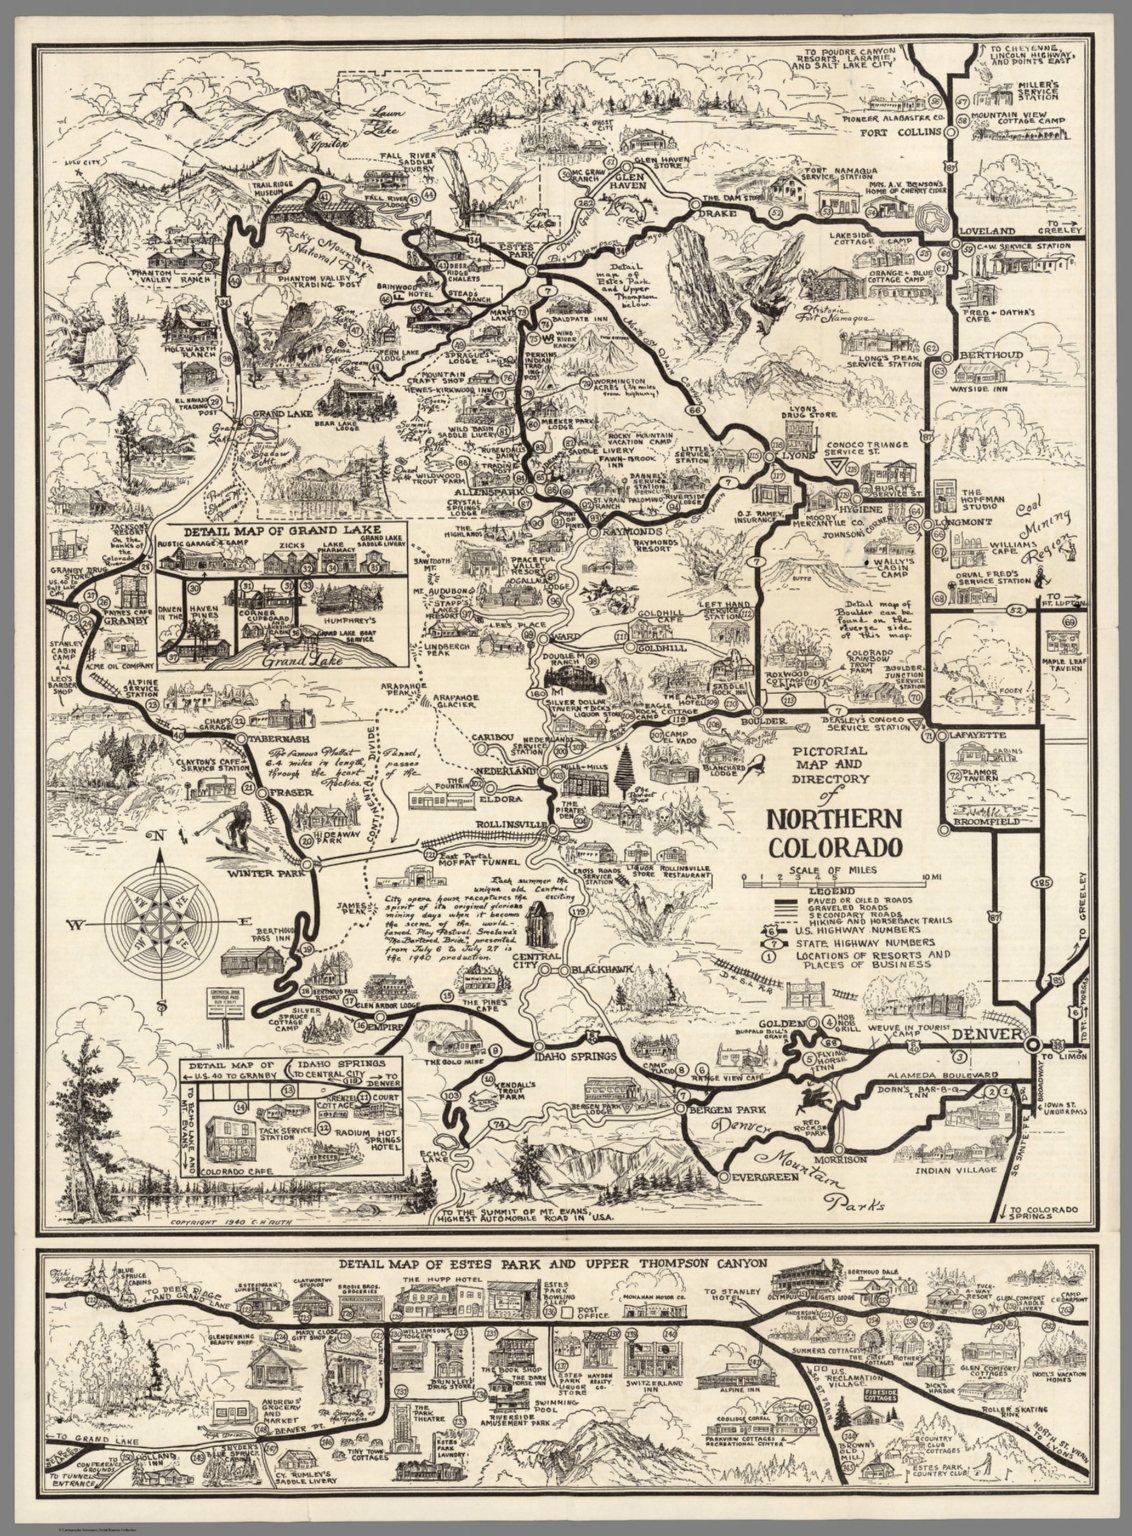 Pictorial Map and Directory of Northern Colorado. Map of Estes Park ...